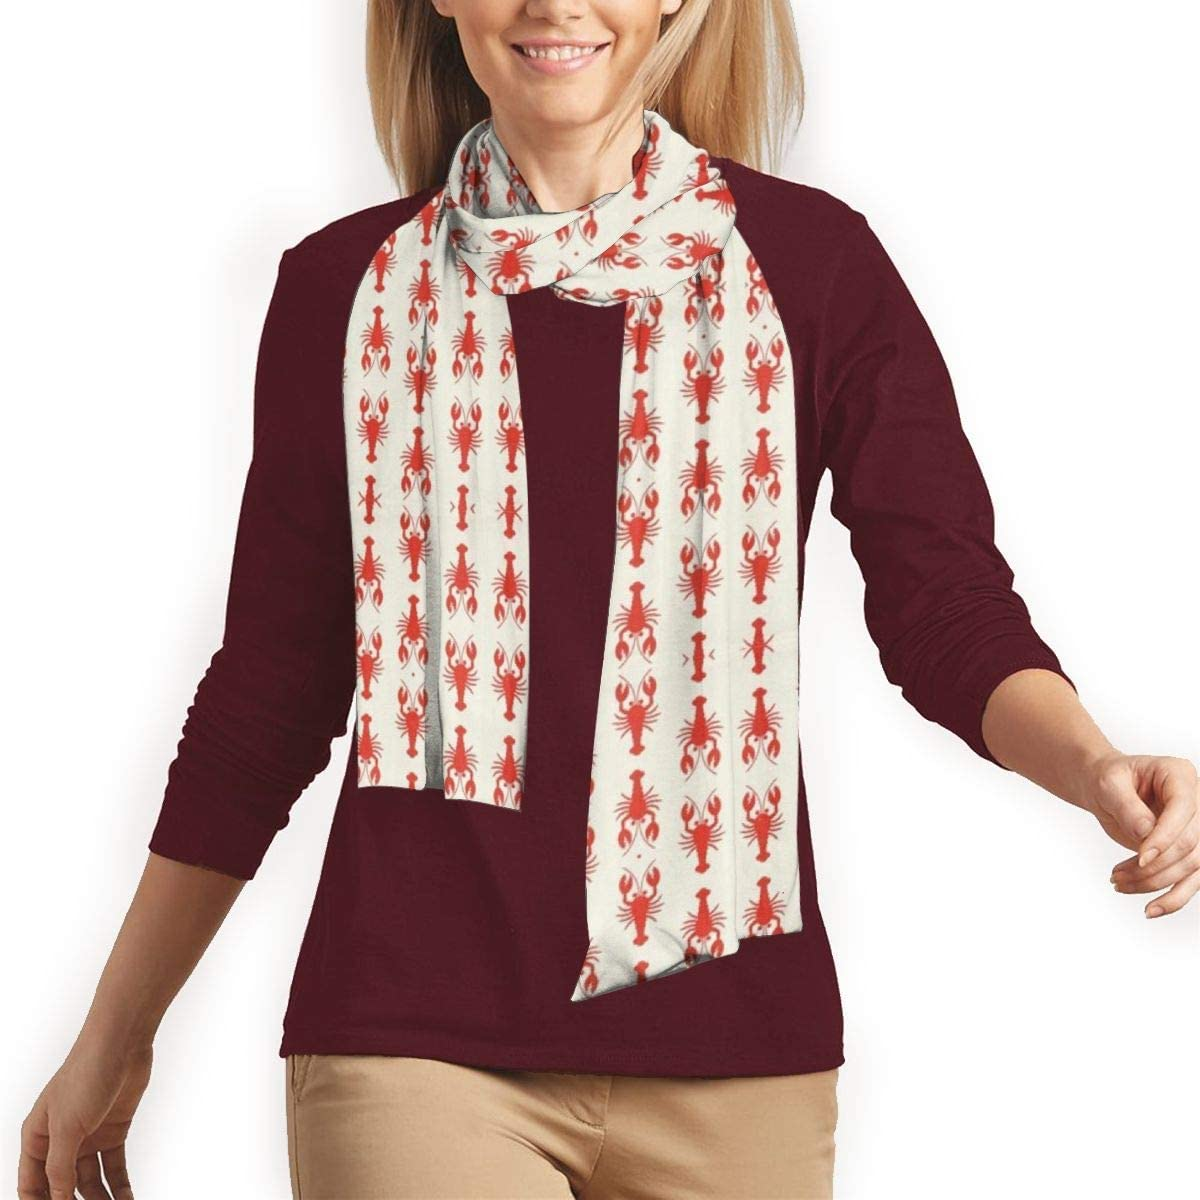 Womens Soft Cashmere Feel Pashmina Shawls Wraps Winter Scarf(Red Maple)